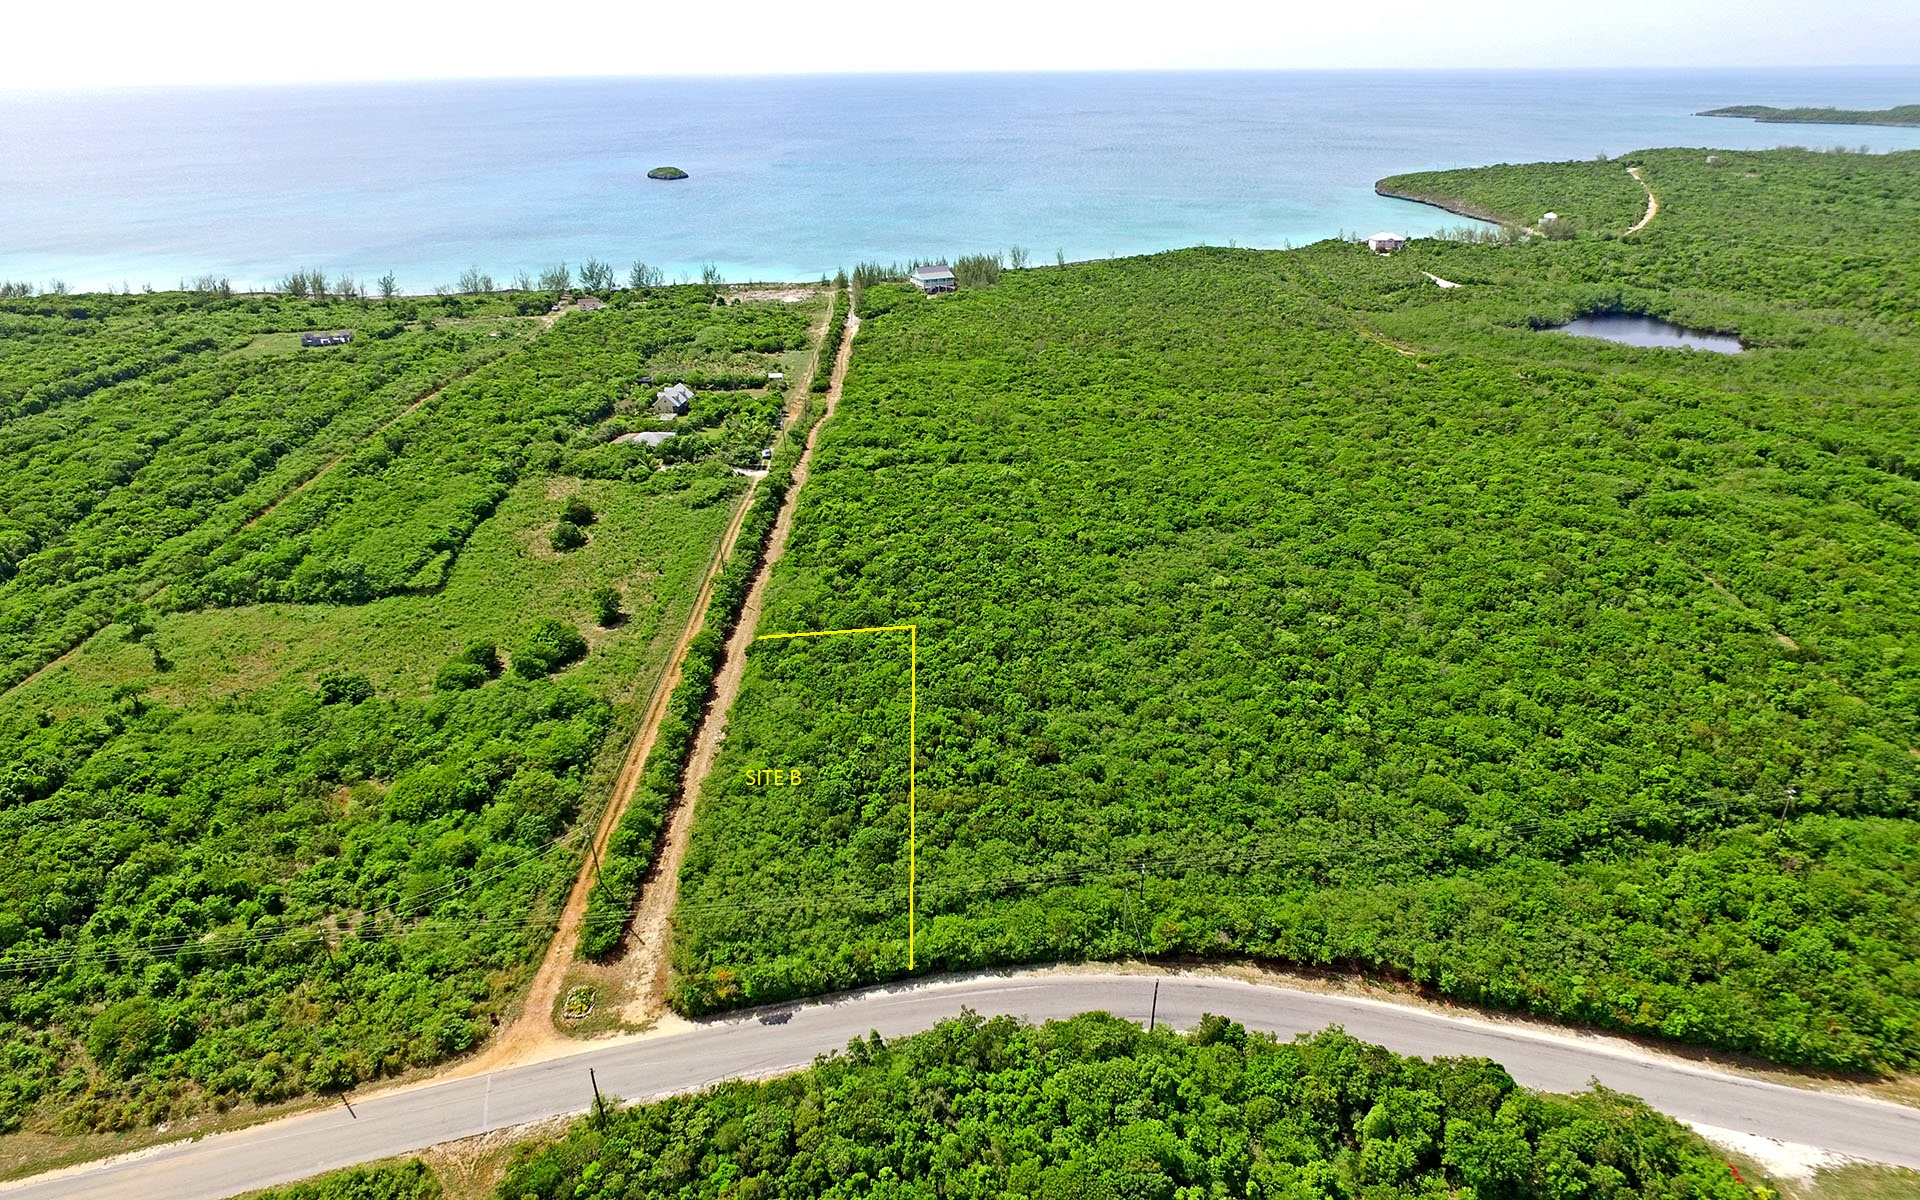 Land for Sale at Moonlight Bay, Savannah Sound, Eleuthera Home Lots MLS 28619 Savannah Sound, Eleuthera, Bahamas